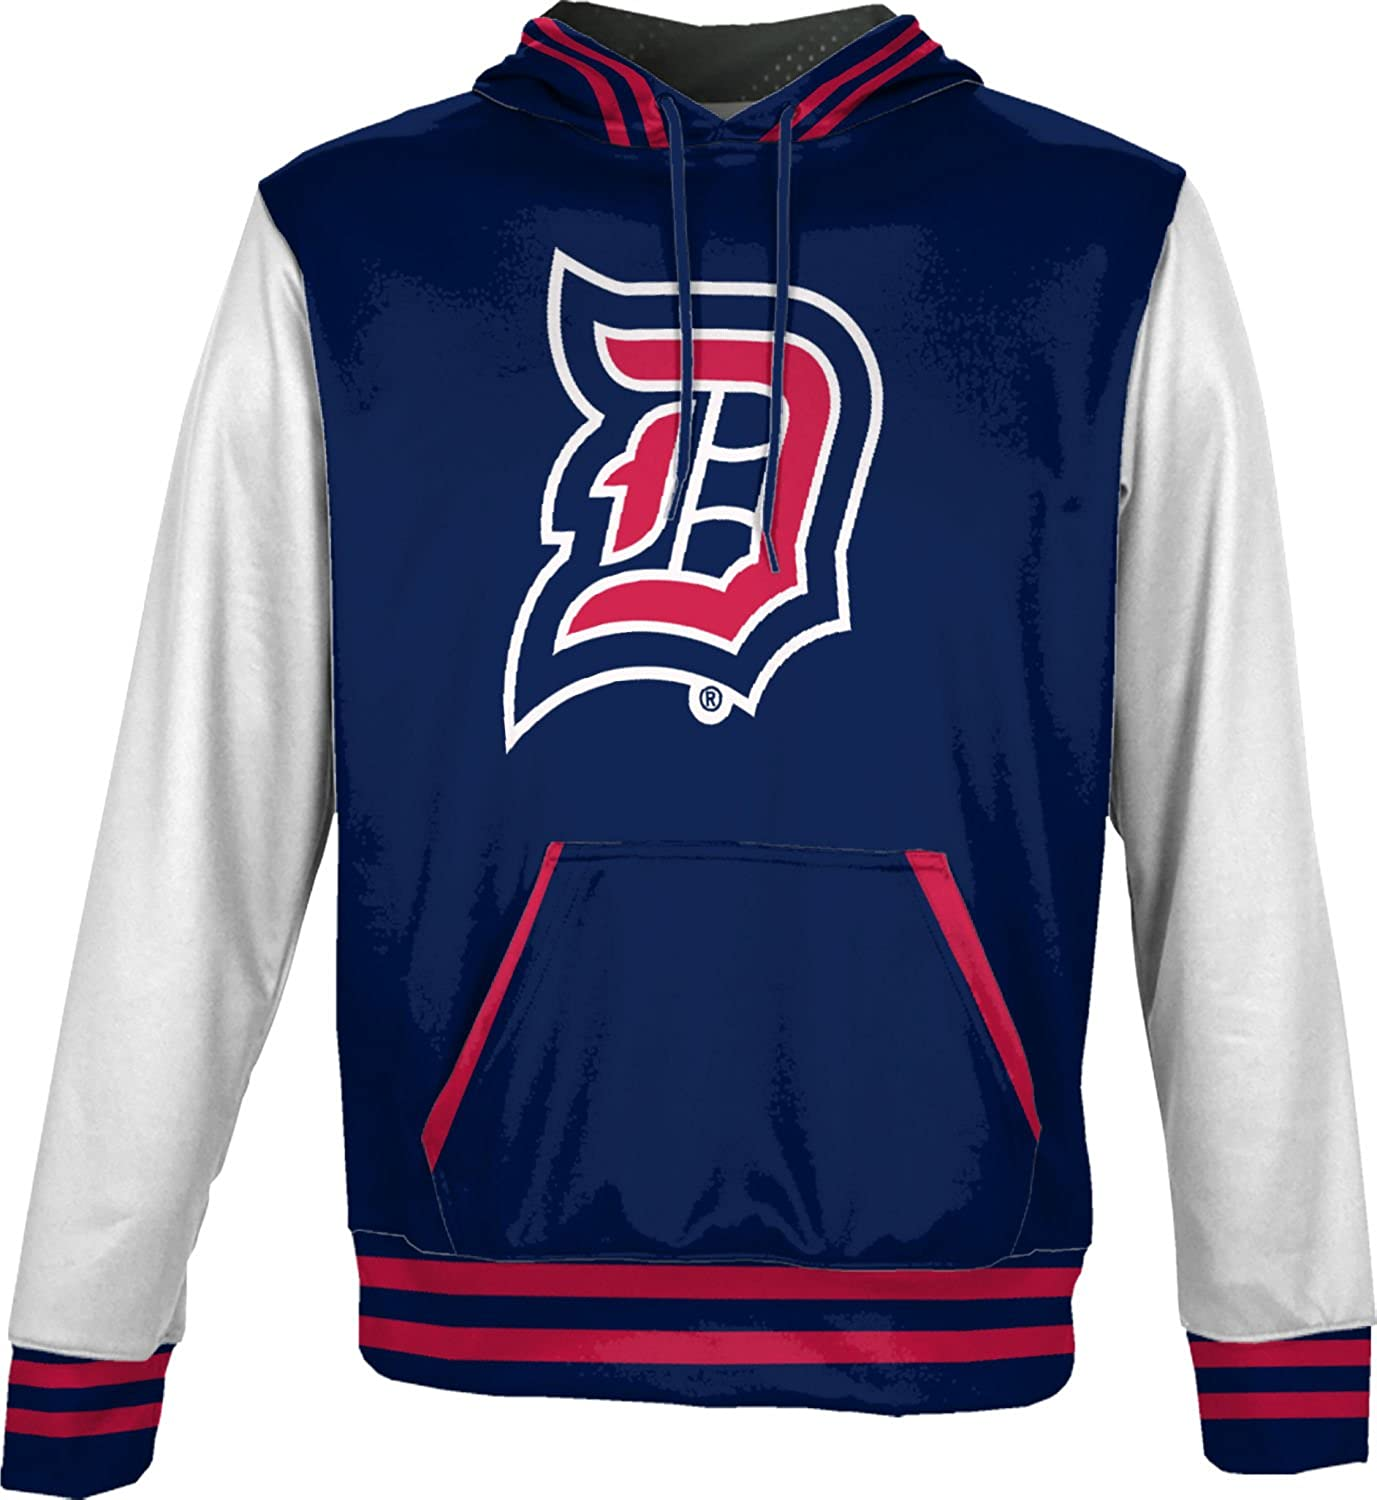 ProSphere Duquesne University Boys Hoodie Sweatshirt Letterman